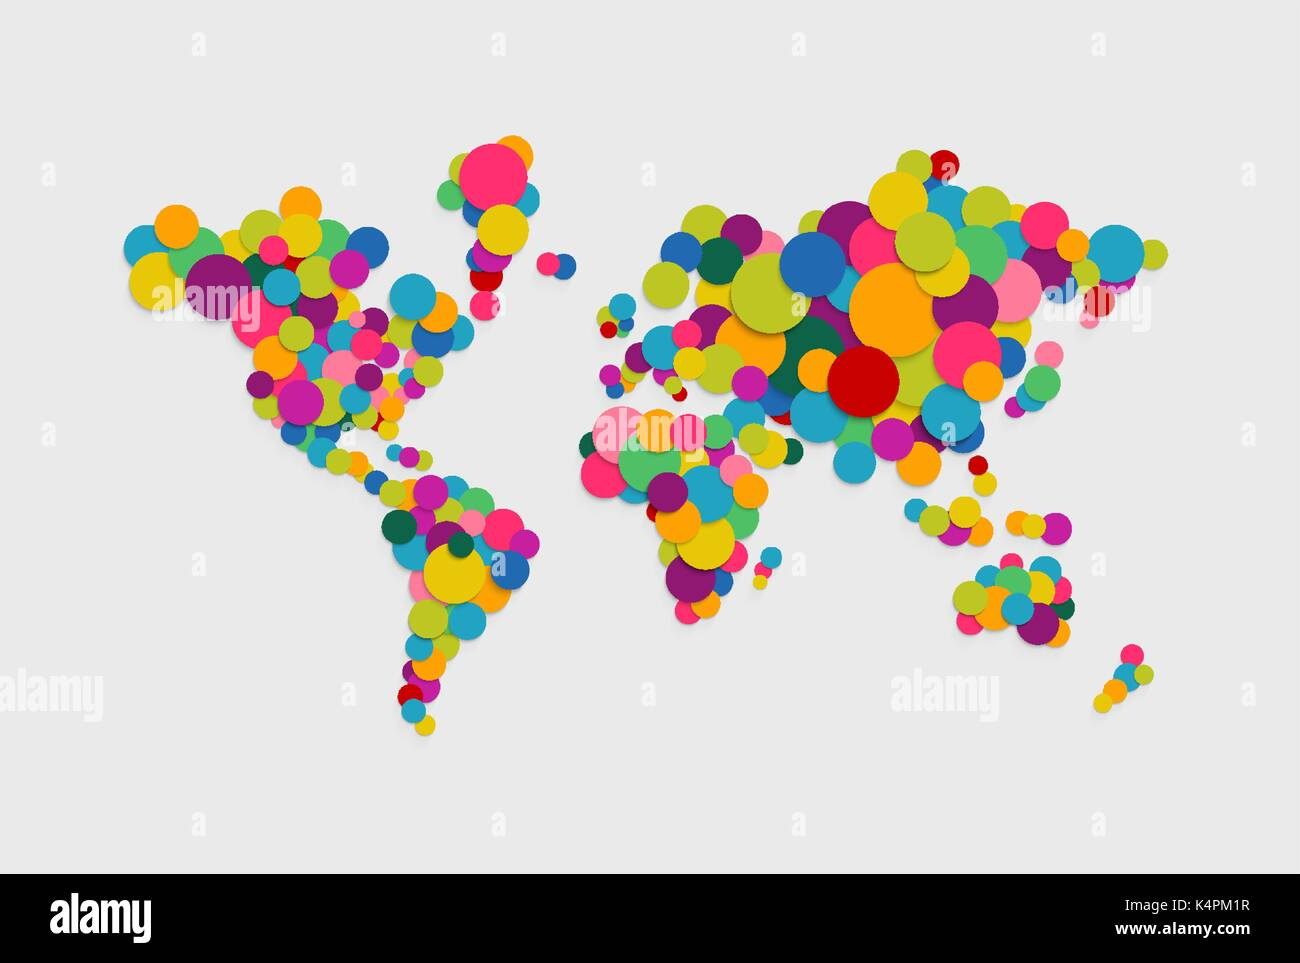 Colorful abstract world map concept illustration made of vibrant colorful abstract world map concept illustration made of vibrant multicolor circles in 3d paper cut style gumiabroncs Image collections